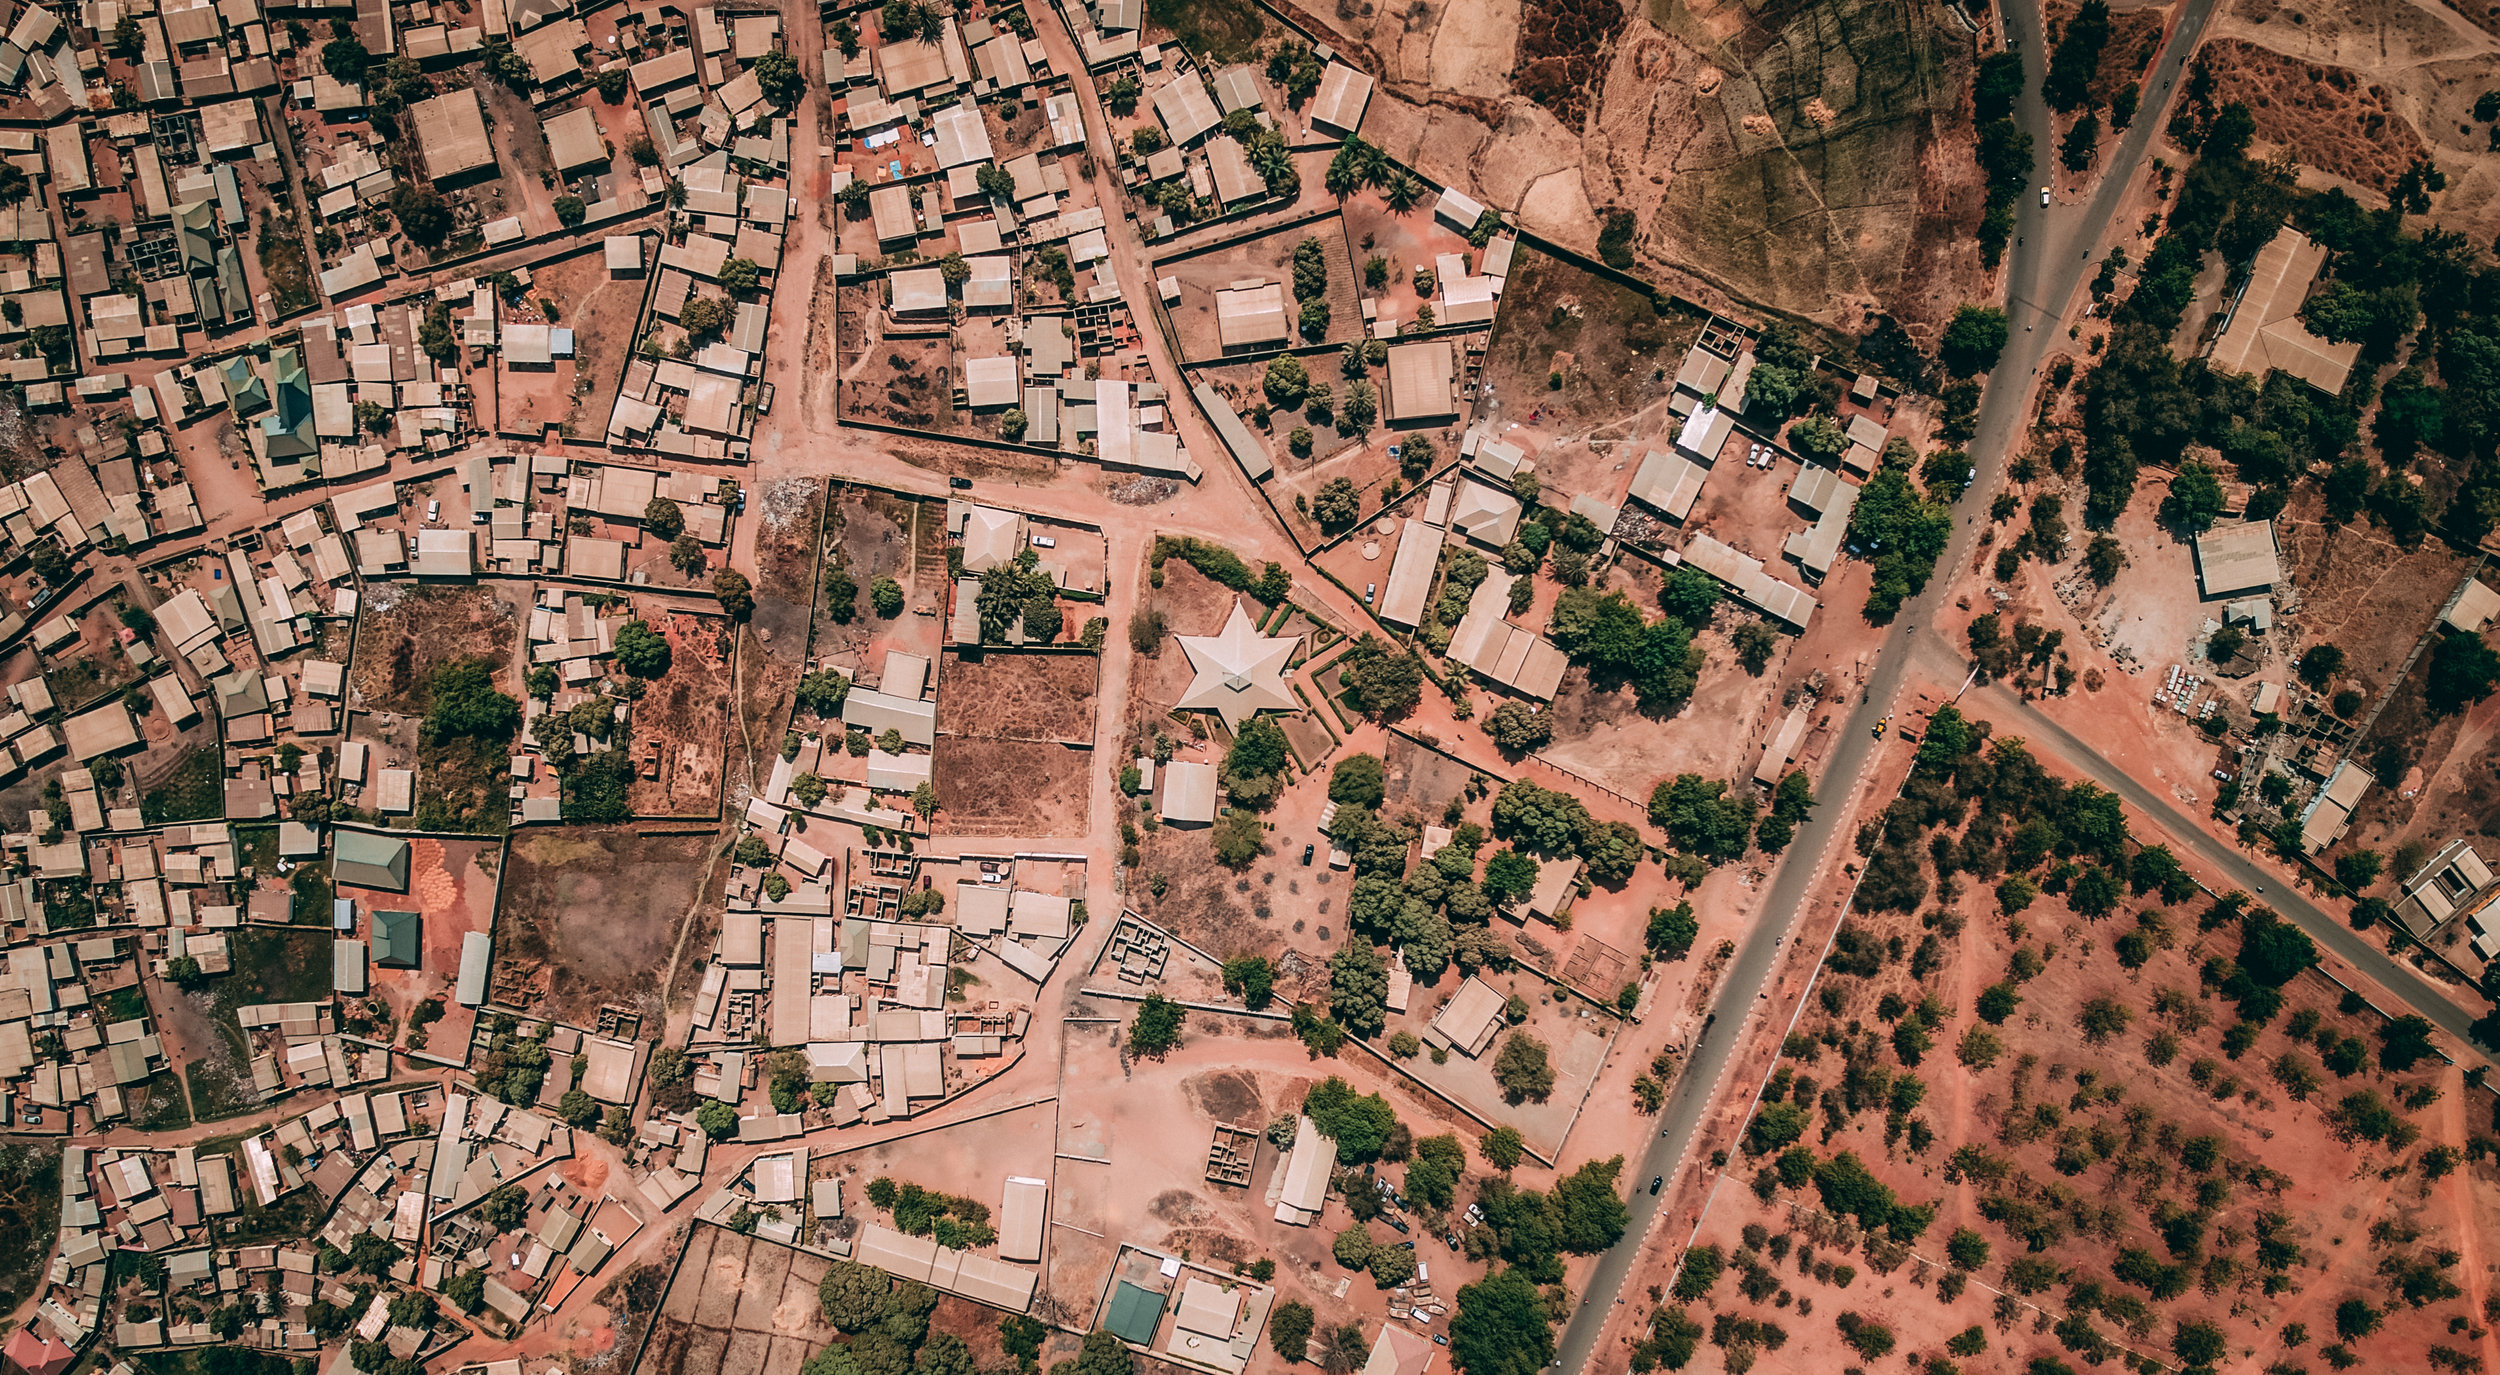 Humanitarian GIS - Geospatial Solutions for Global GoodSee More